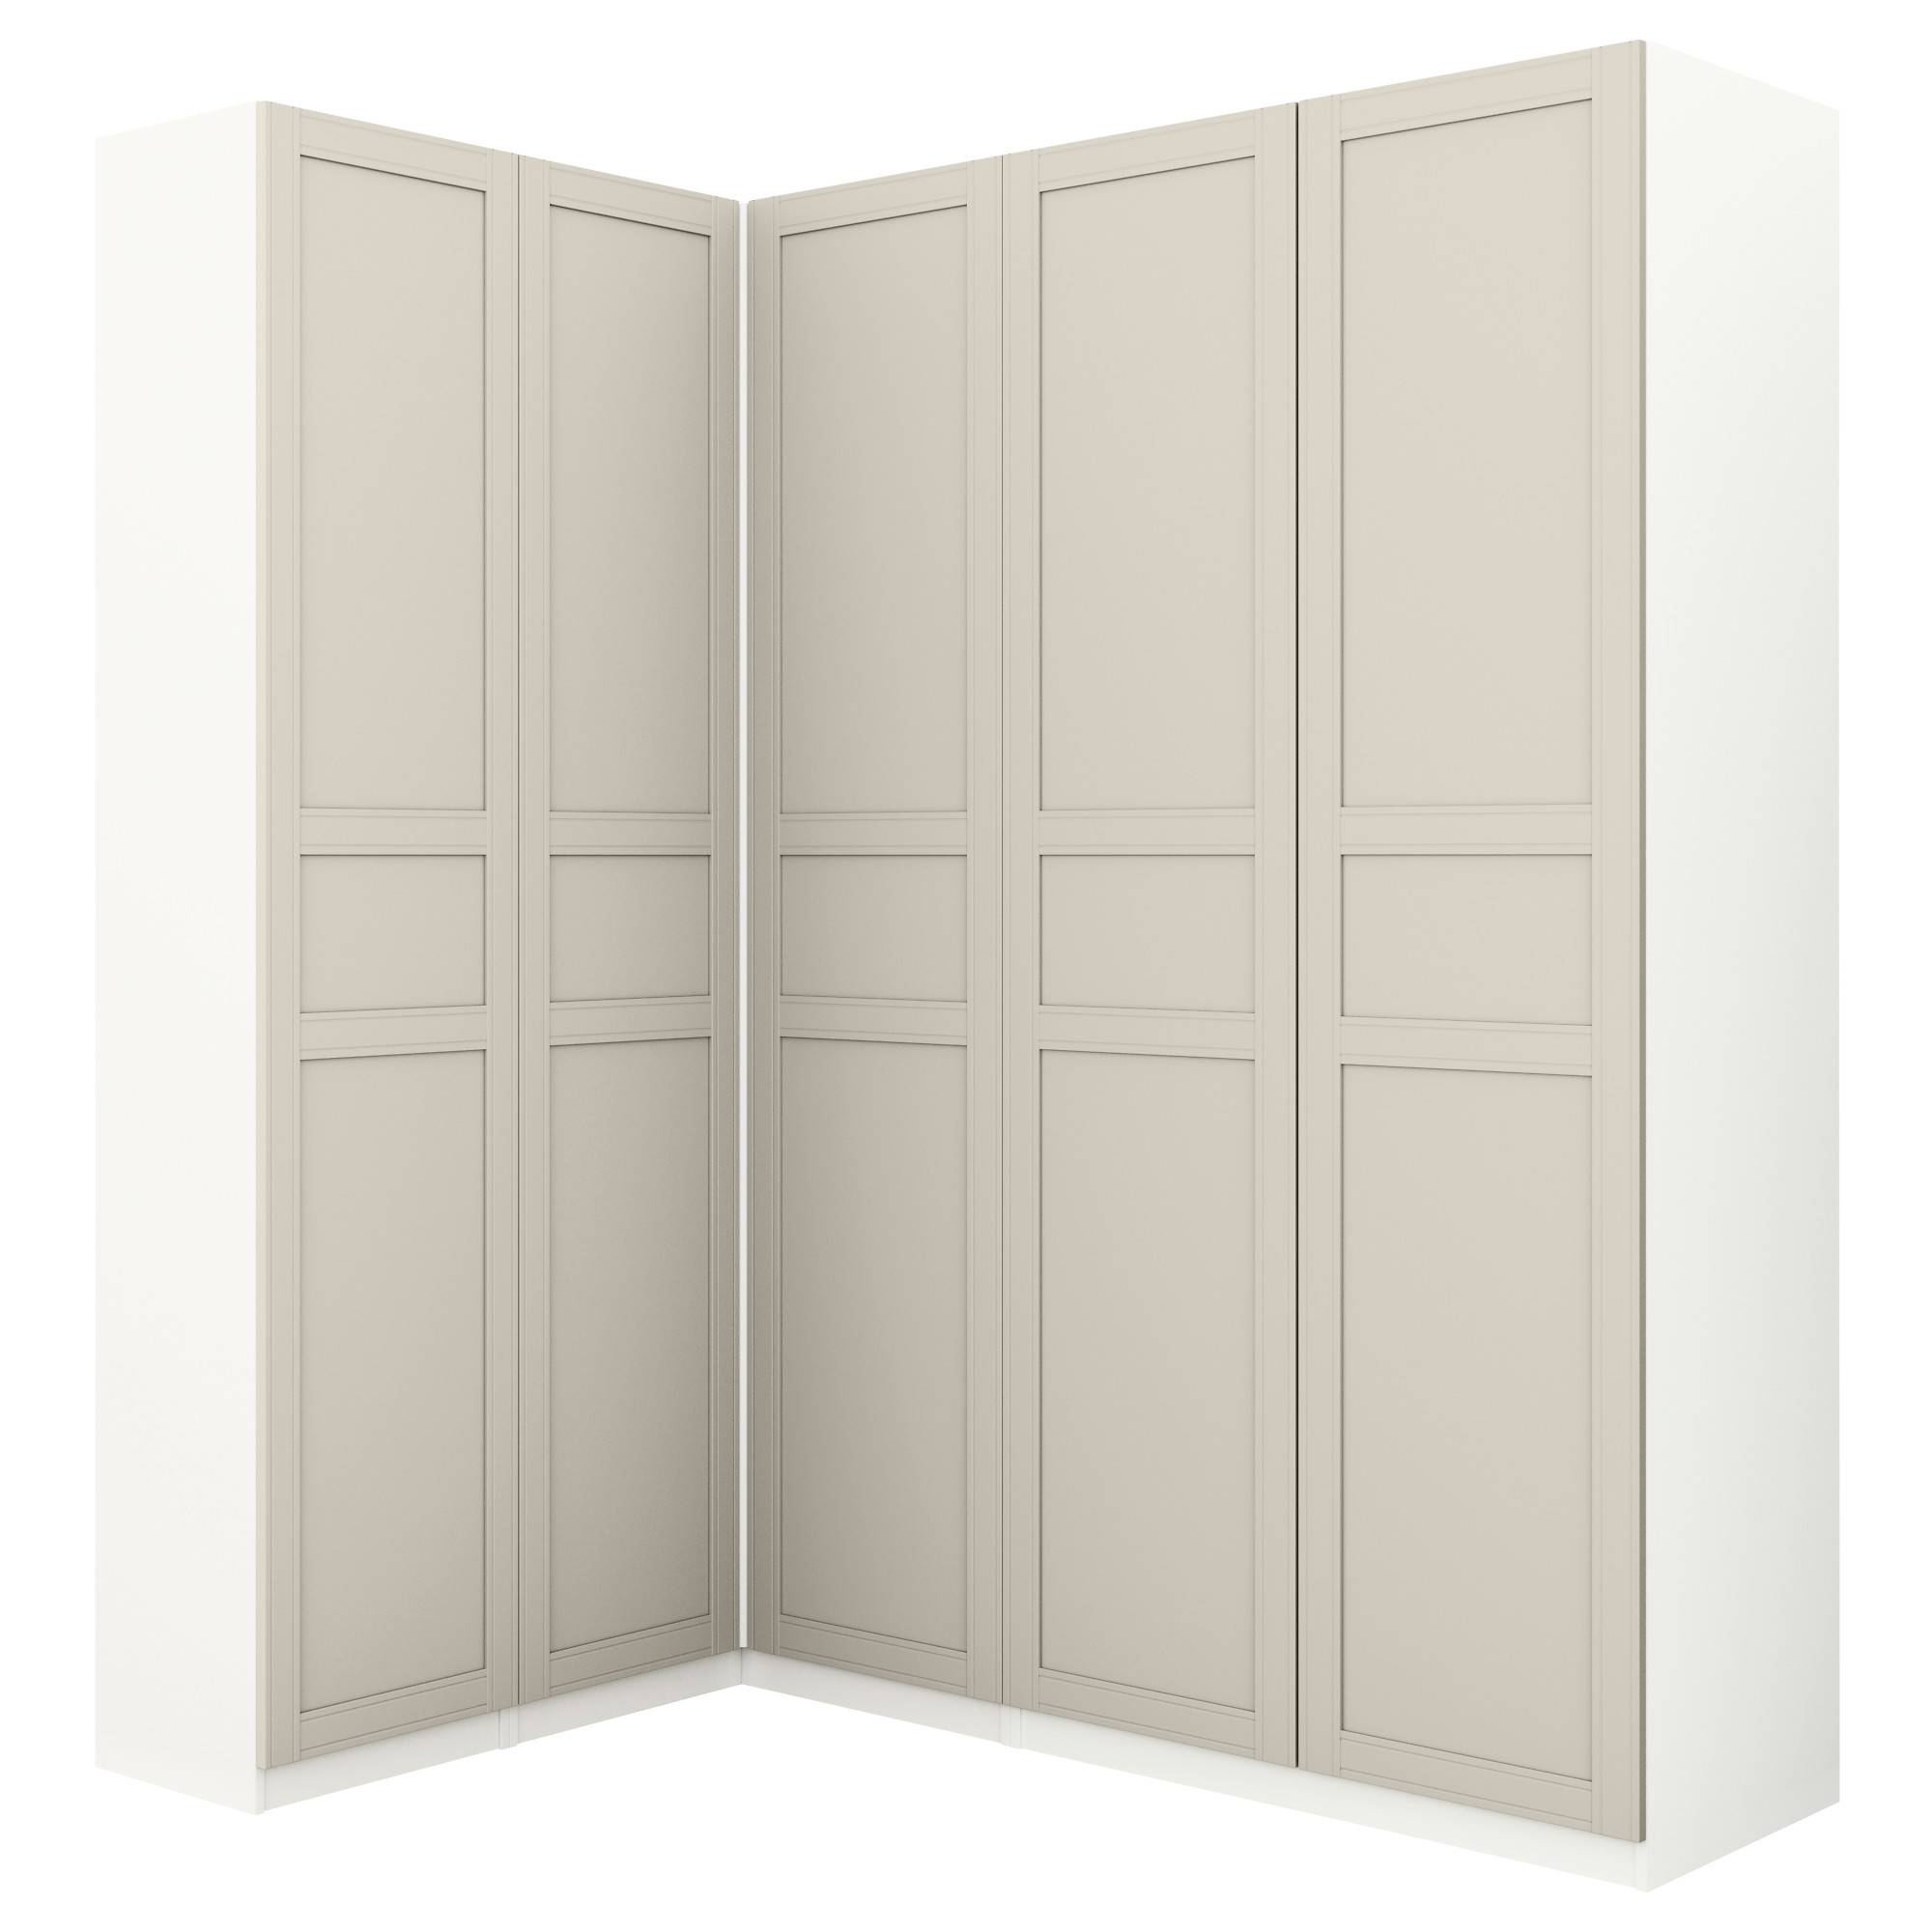 Pax Corner Wardrobe White/flisberget Light Beige 160/188X236 Cm - Ikea for White Corner Wardrobes (Image 9 of 15)